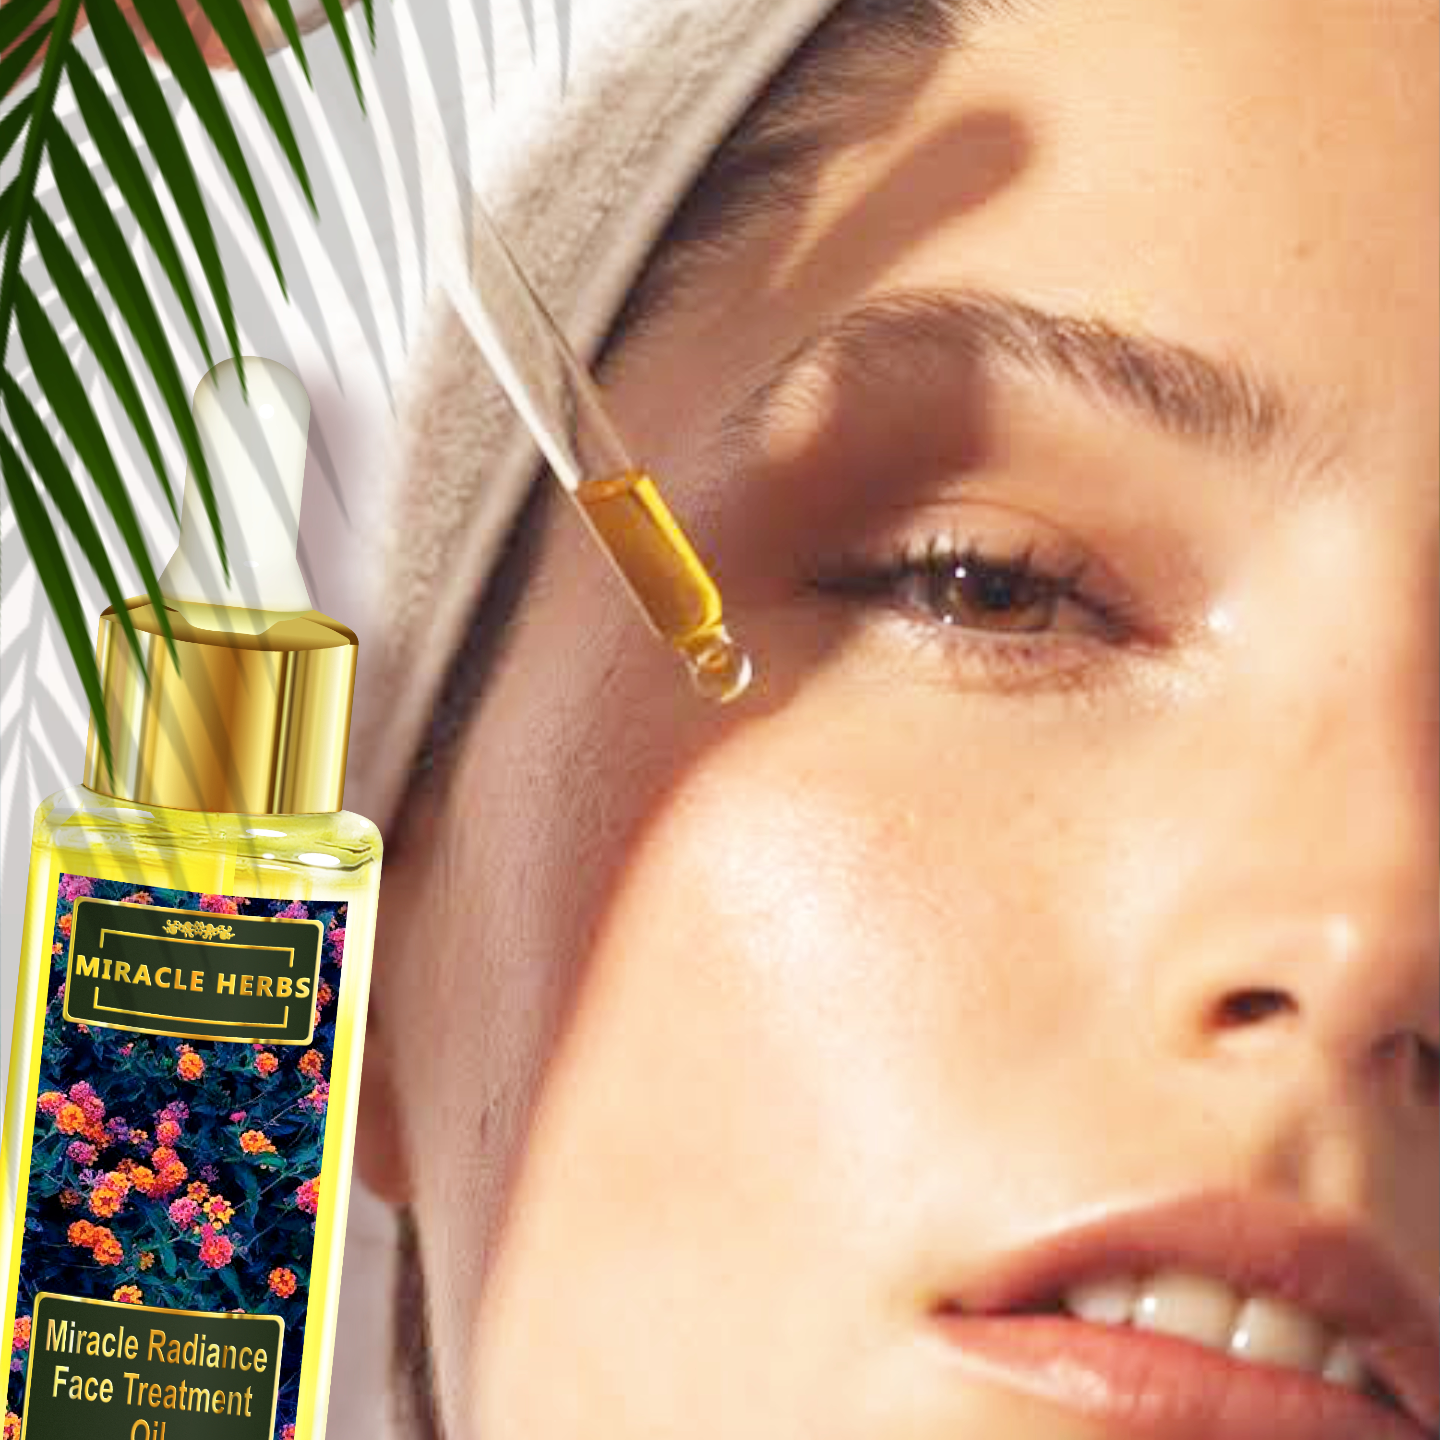 Miracle Herbs Radiance Face Treatment Oil Multivitamin Complex 100 Pure Plant Extracts For All Skin Type,30 ml, Skin Brightening.